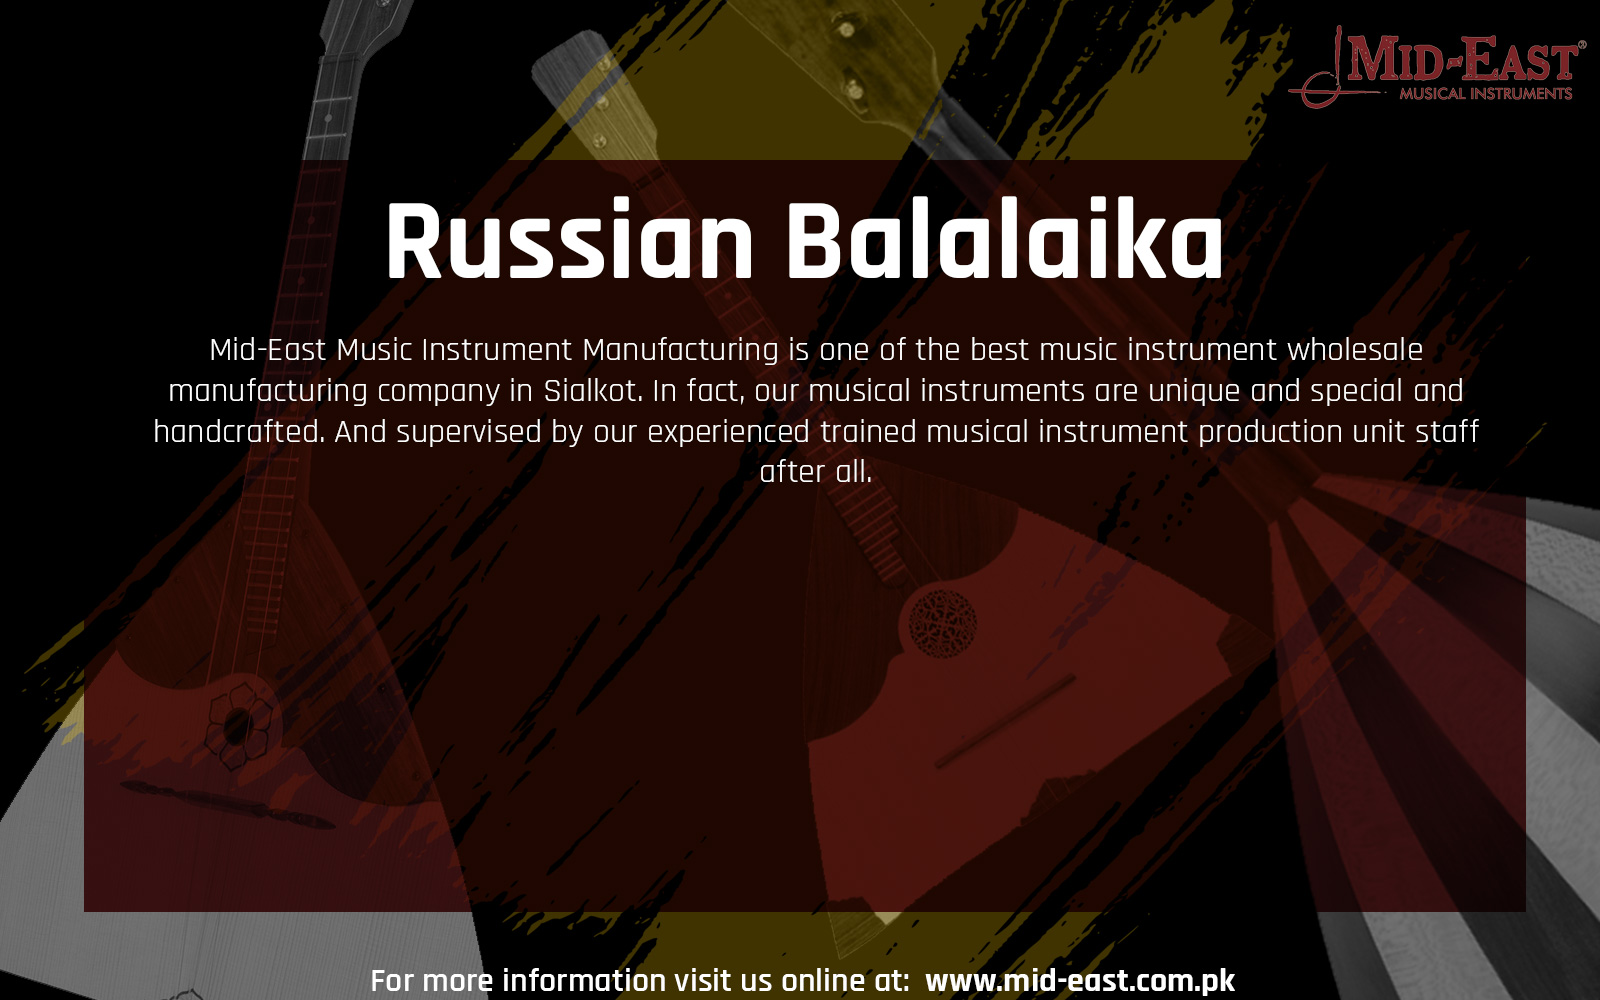 Best Russian Balalaika Wholesale